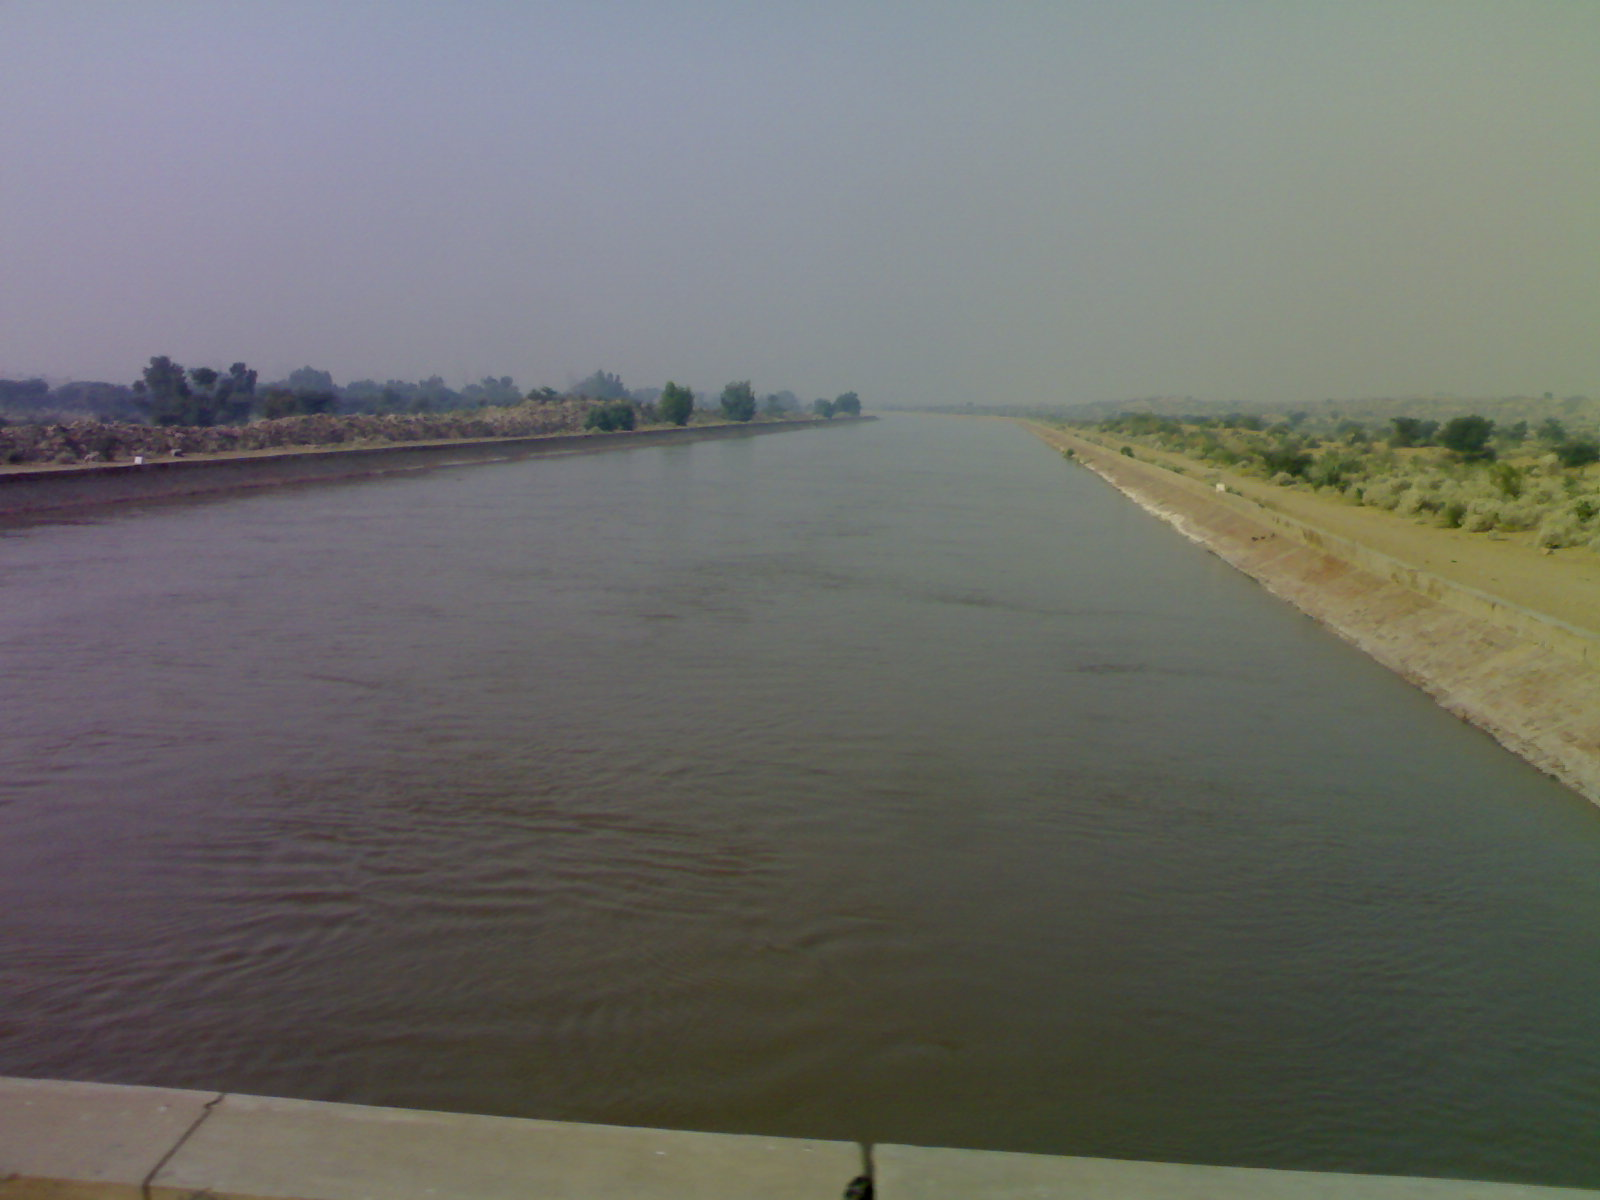 indira gandhi canal rajasthan canal indira gandhi canal passing through thar desert near chhatargarh bikaner district rajasthan